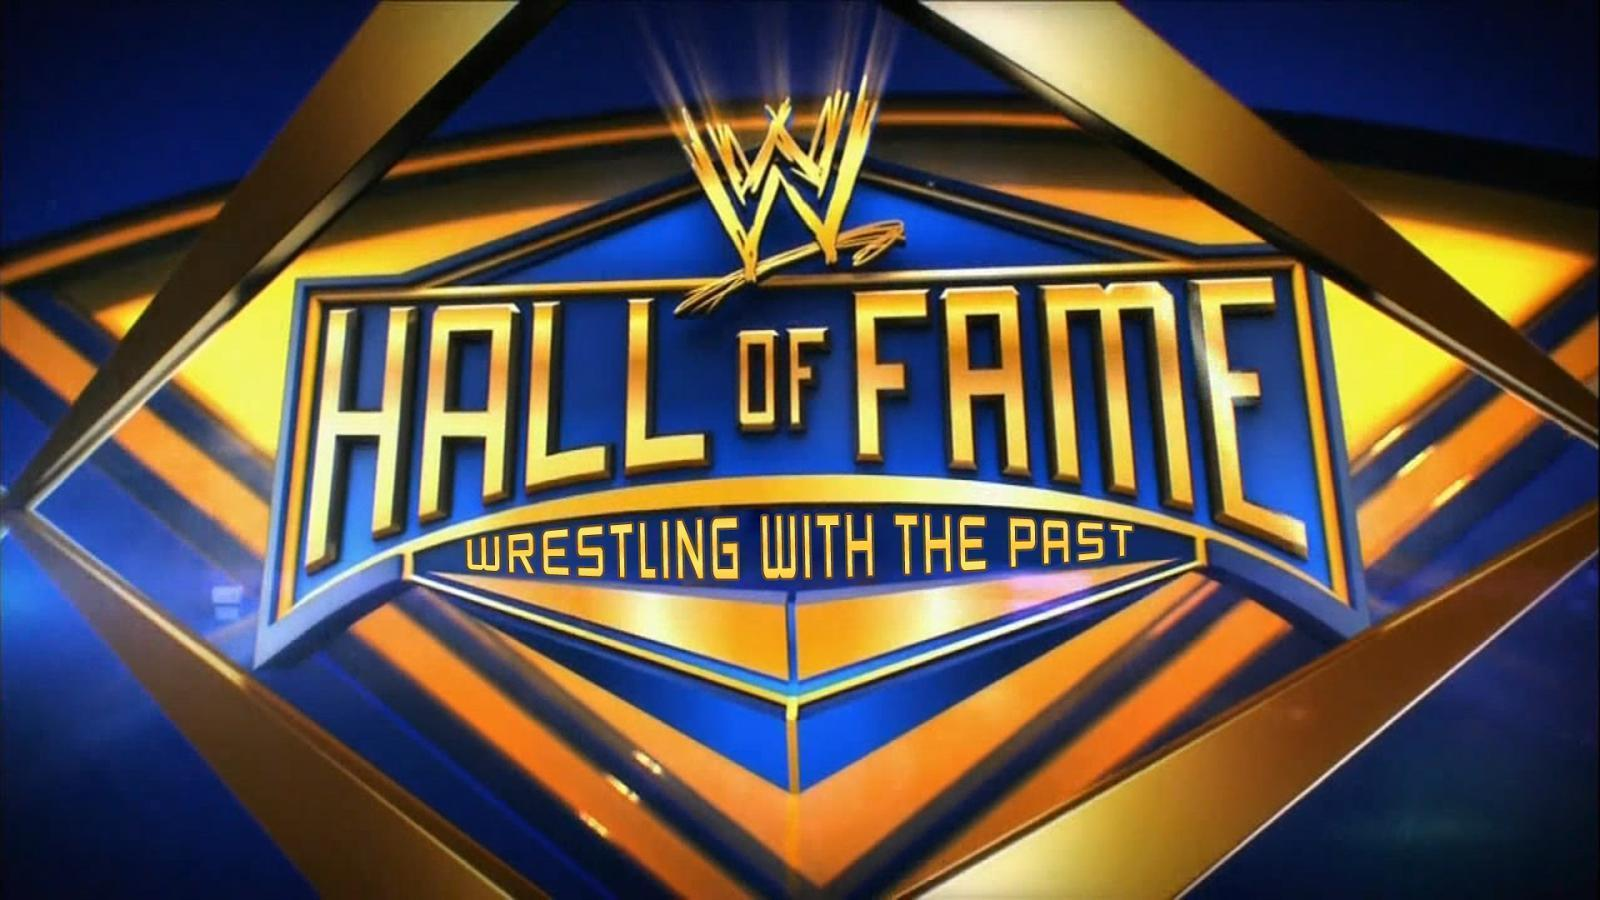 Wwe hall of fame 2014 logo